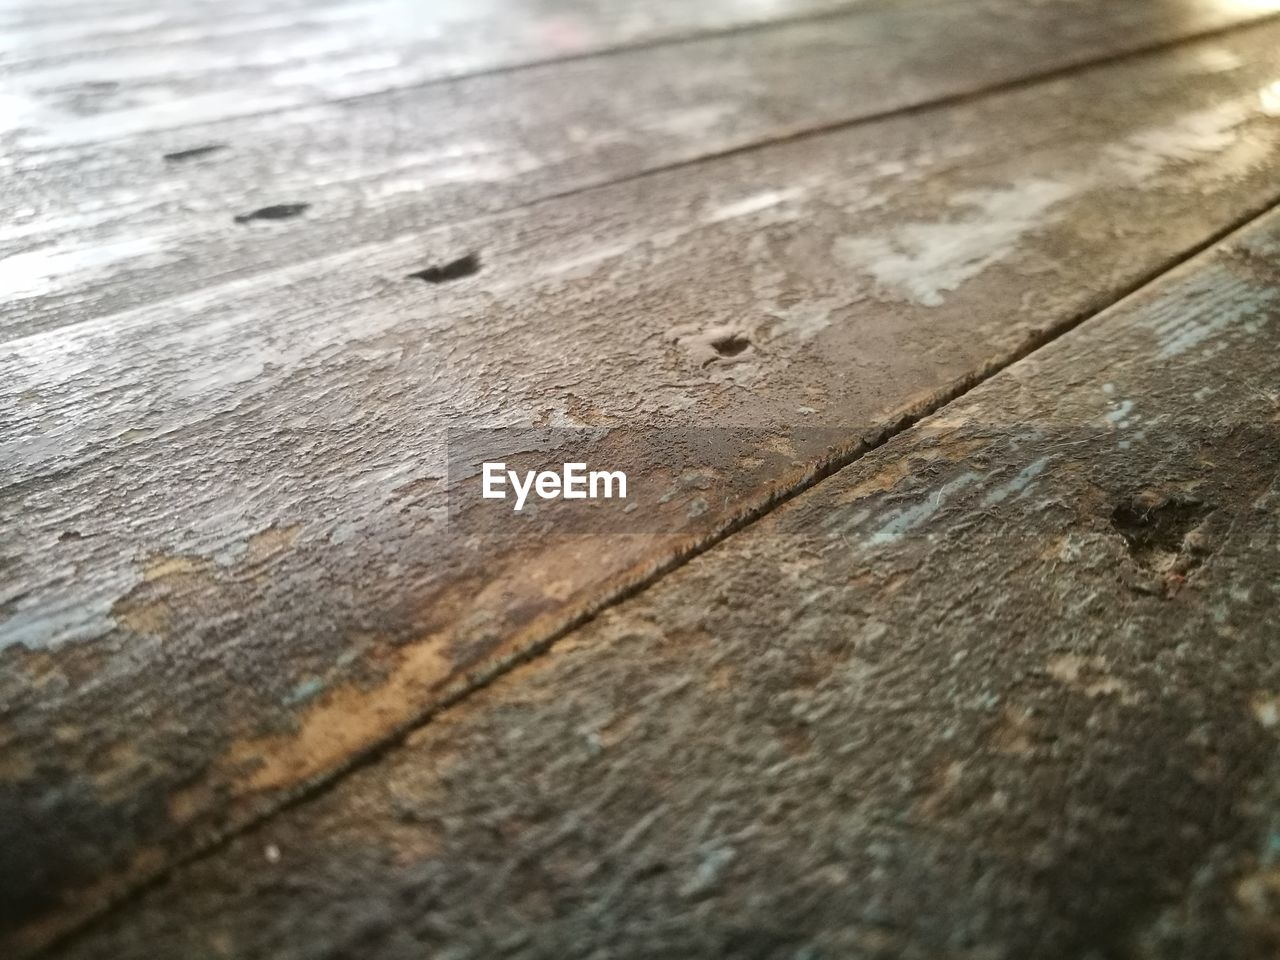 wood - material, close-up, no people, textured, selective focus, backgrounds, table, day, indoors, nature